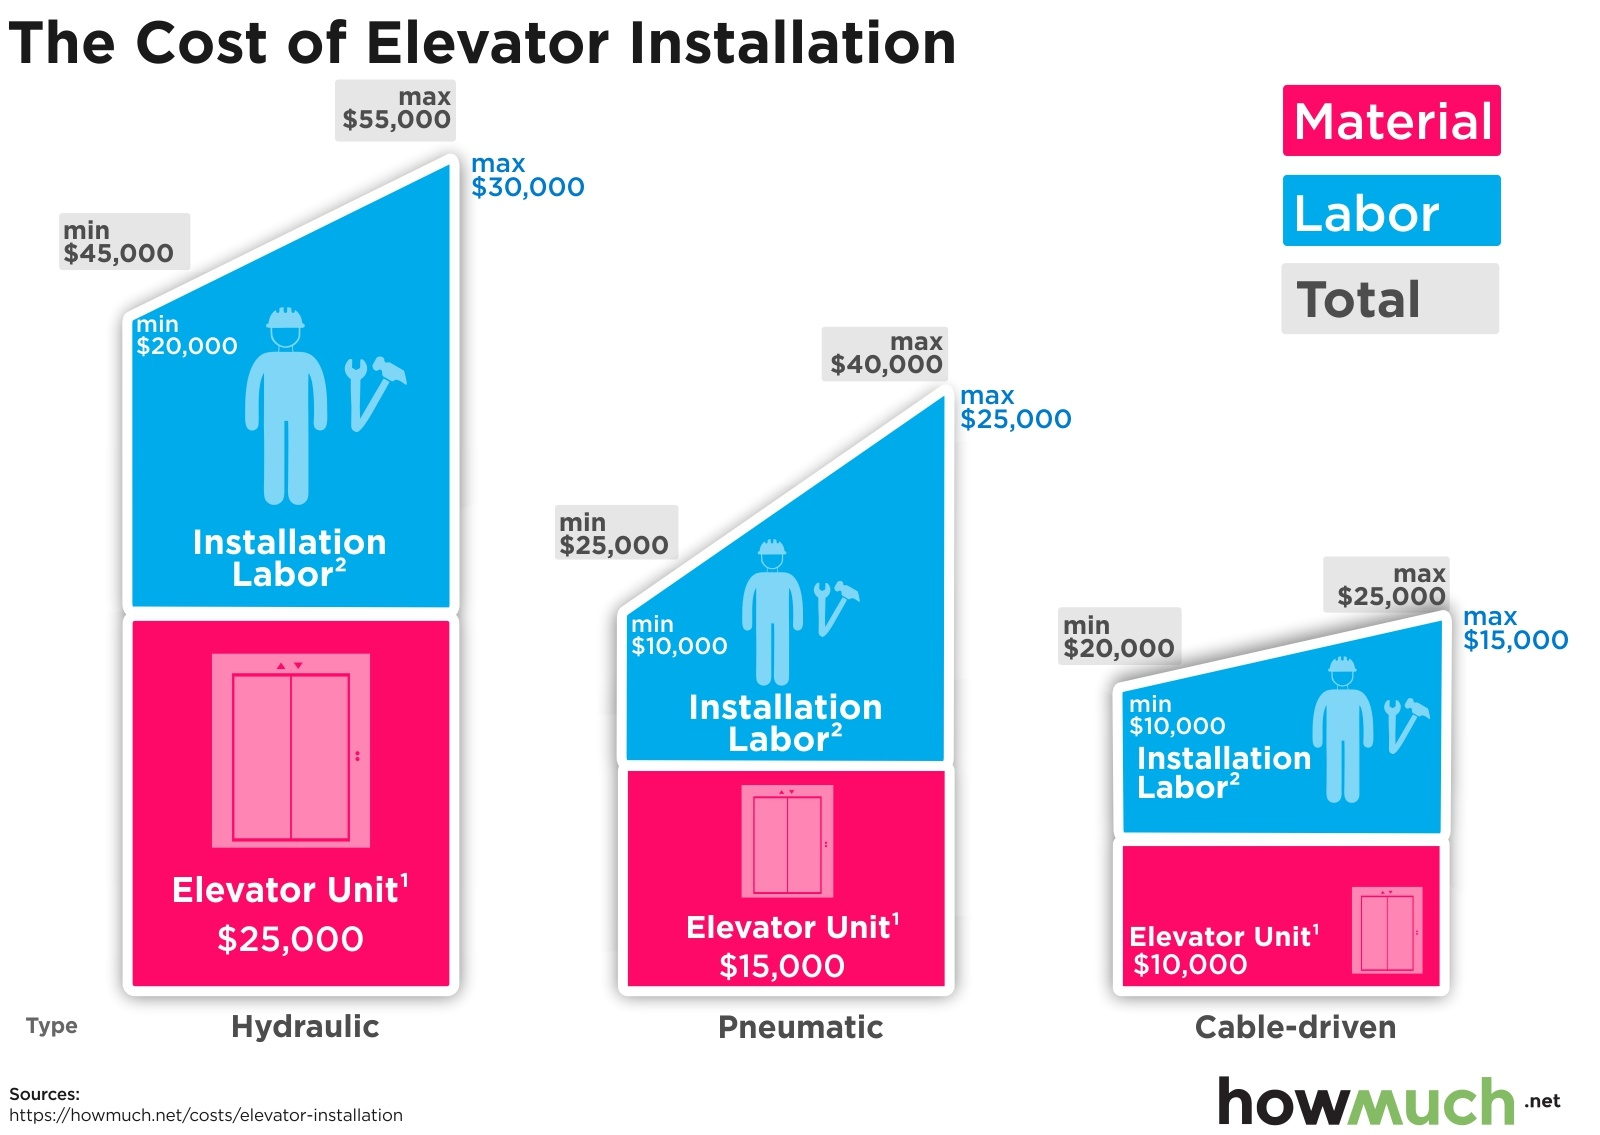 The Cost of Elevator Installation